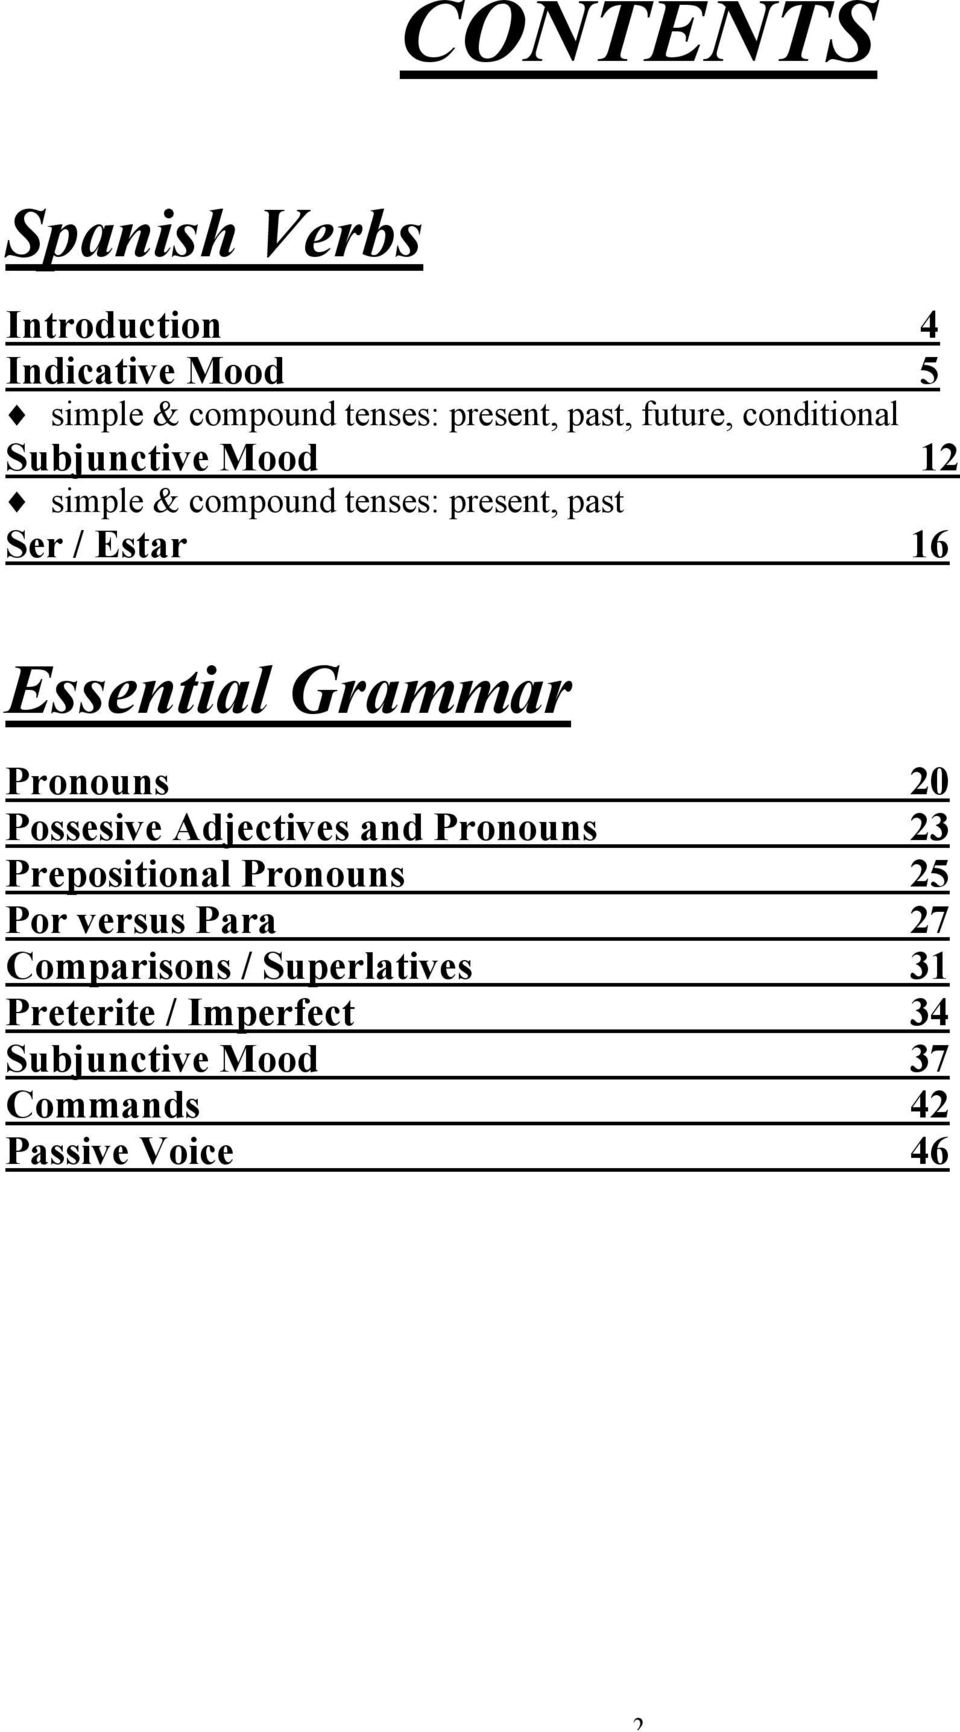 Essential Grammar Pronouns 20 Possesive Adjectives and Pronouns 23 Prepositional Pronouns 25 Por